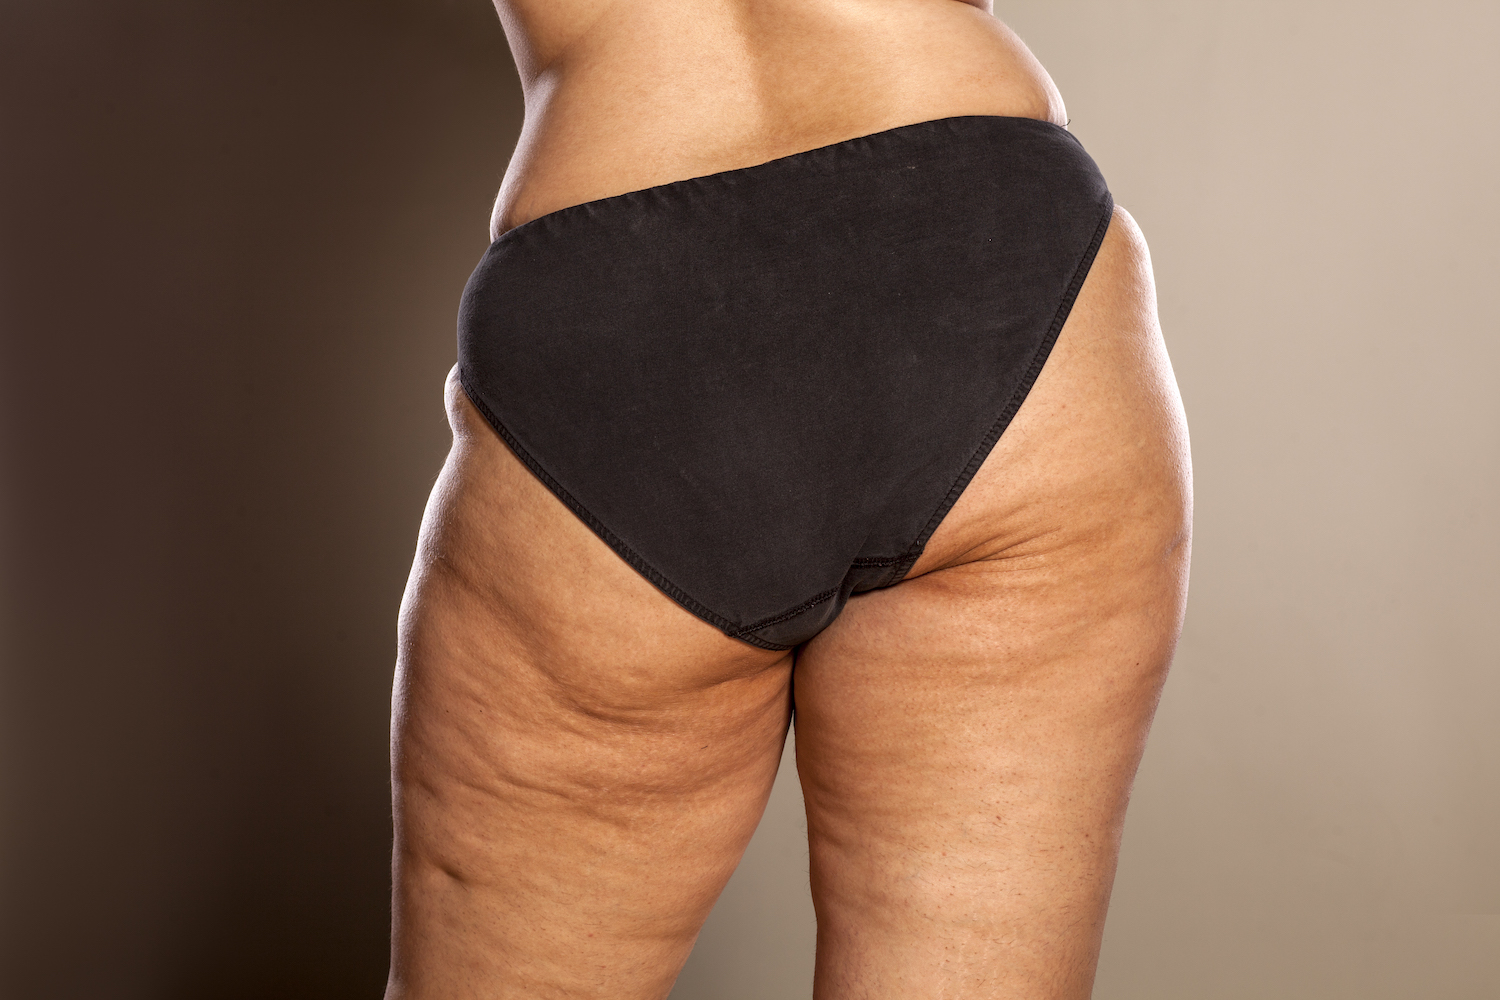 Is Cellulite Normal The Cellulite Experts Lipotherapeia